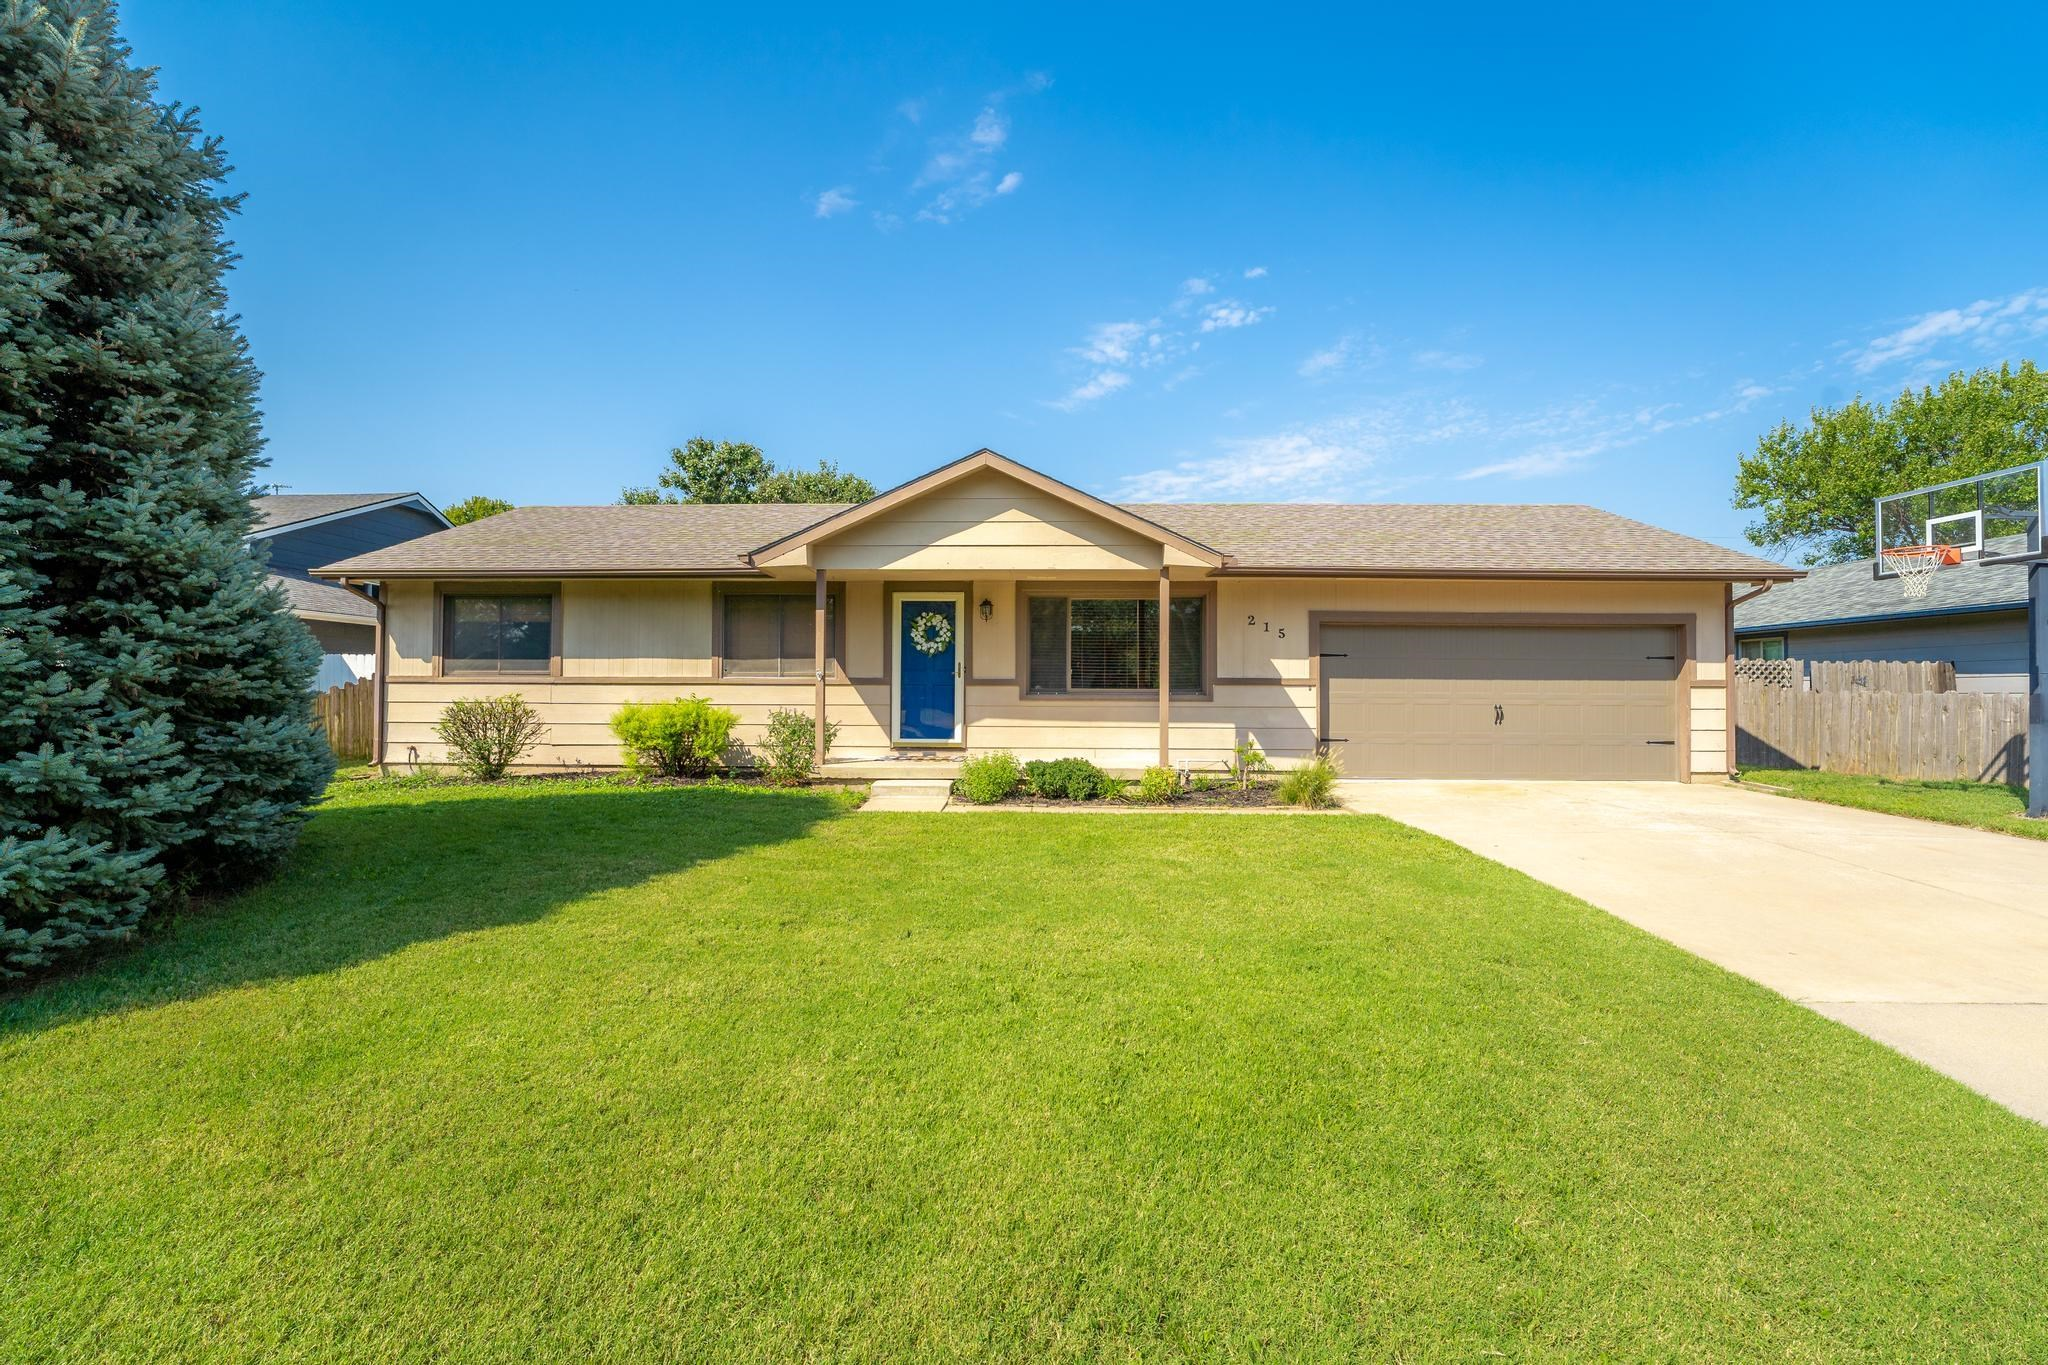 Don't Miss this Opportunity!  Updated 4 bedroom, office/bonus room, 2 bathroom, 2 car garage ranch h